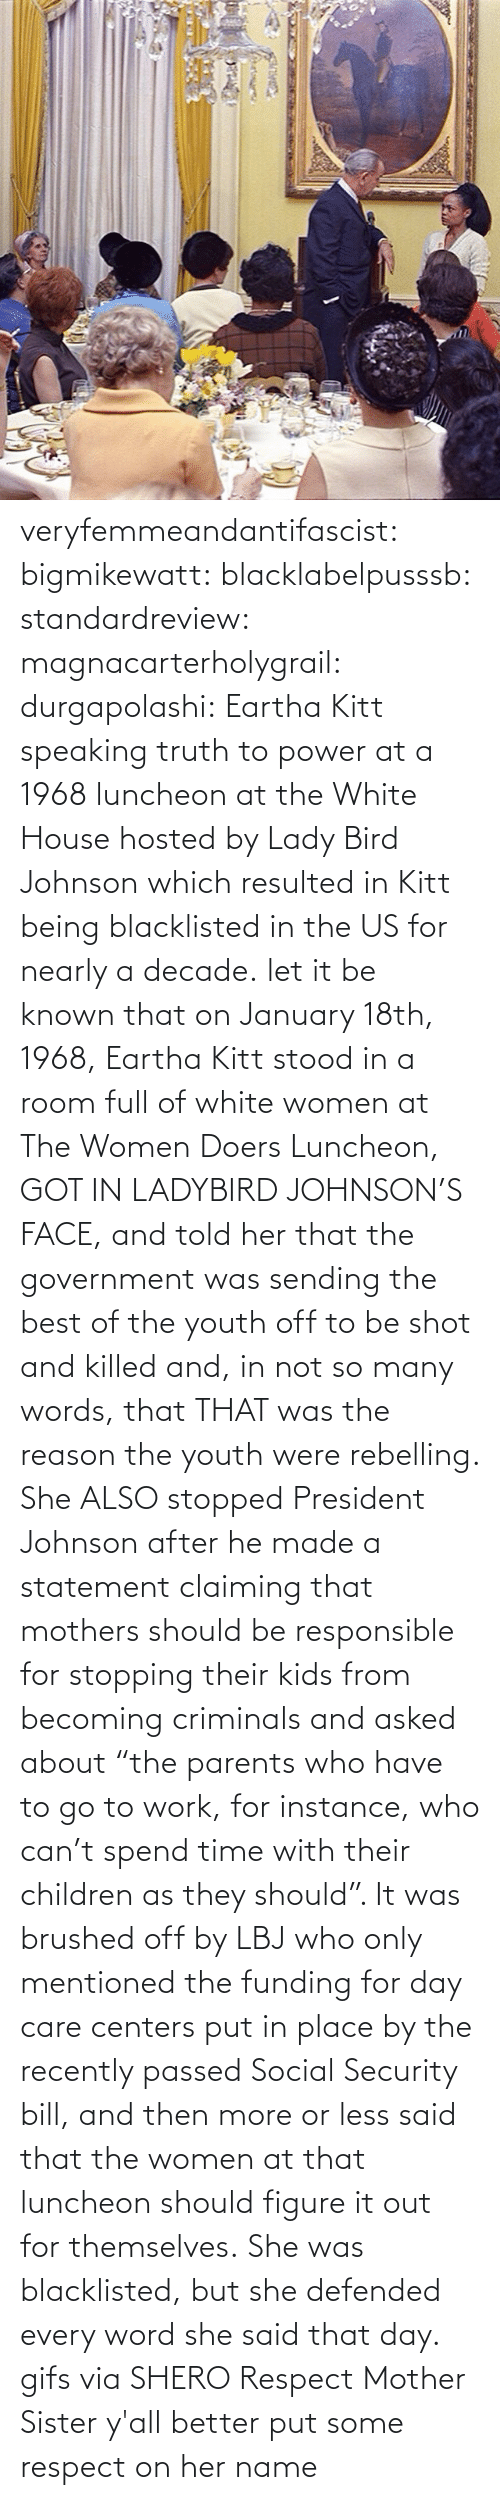 "social: veryfemmeandantifascist: bigmikewatt:  blacklabelpusssb:  standardreview:  magnacarterholygrail:  durgapolashi:  Eartha Kitt speaking truth to power at a 1968 luncheon at the White House hosted by Lady Bird Johnson which resulted in Kitt being blacklisted in the US for nearly a decade.  let it be known that on January 18th, 1968, Eartha Kitt stood in a room full of white women at The Women Doers Luncheon, GOT IN LADYBIRD JOHNSON'S FACE, and told her that the government was sending the best of the youth off to be shot and killed and, in not so many words, that THAT was the reason the youth were rebelling. She ALSO stopped President Johnson after he made a statement claiming that mothers should be responsible for stopping their kids from becoming criminals and asked about ""the parents who have to go to work, for instance, who can't spend time with their children as they should"". It was brushed off by LBJ who only mentioned the funding for day care centers put in place by the recently passed Social Security bill, and then more or less said that the women at that luncheon should figure it out for themselves. She was blacklisted, but she defended every word she said that day.    gifs via  SHERO   Respect Mother Sister  y'all better put some respect on her name"